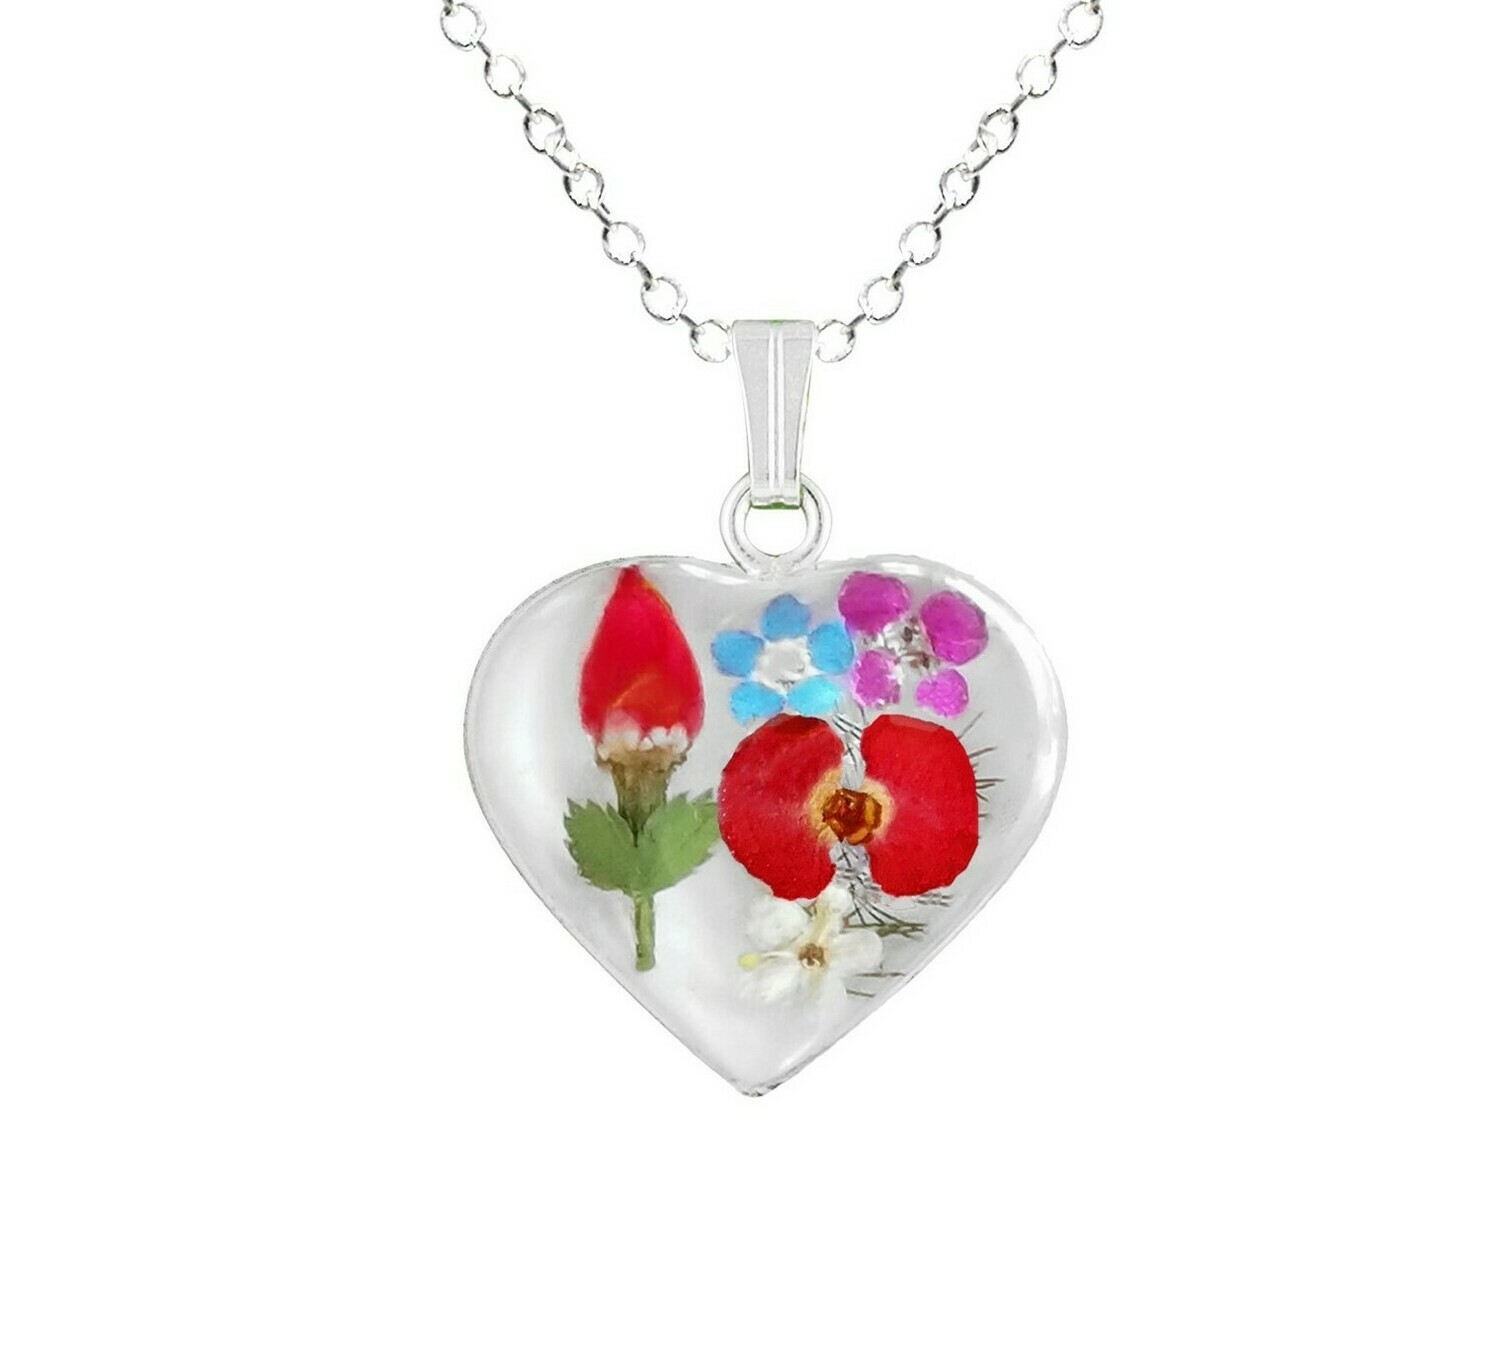 Rose & Mix Flower Necklace, Small Heart, White Background